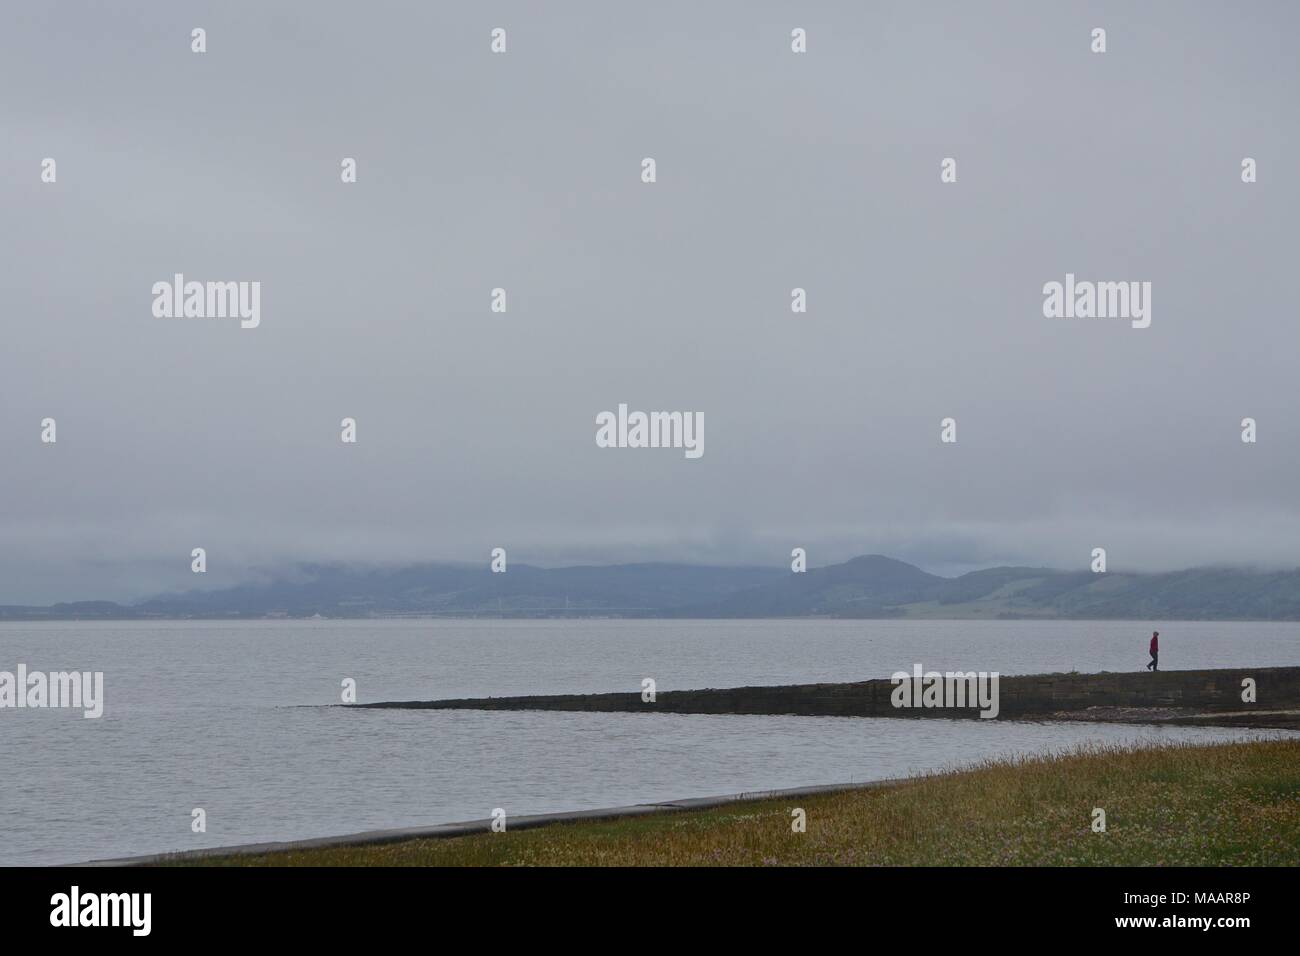 Chanonry Point in fog. A popular location for dolphin watching at the end of a spit of land on the Moray Firth on the Black Isle, Scotland. - Stock Image